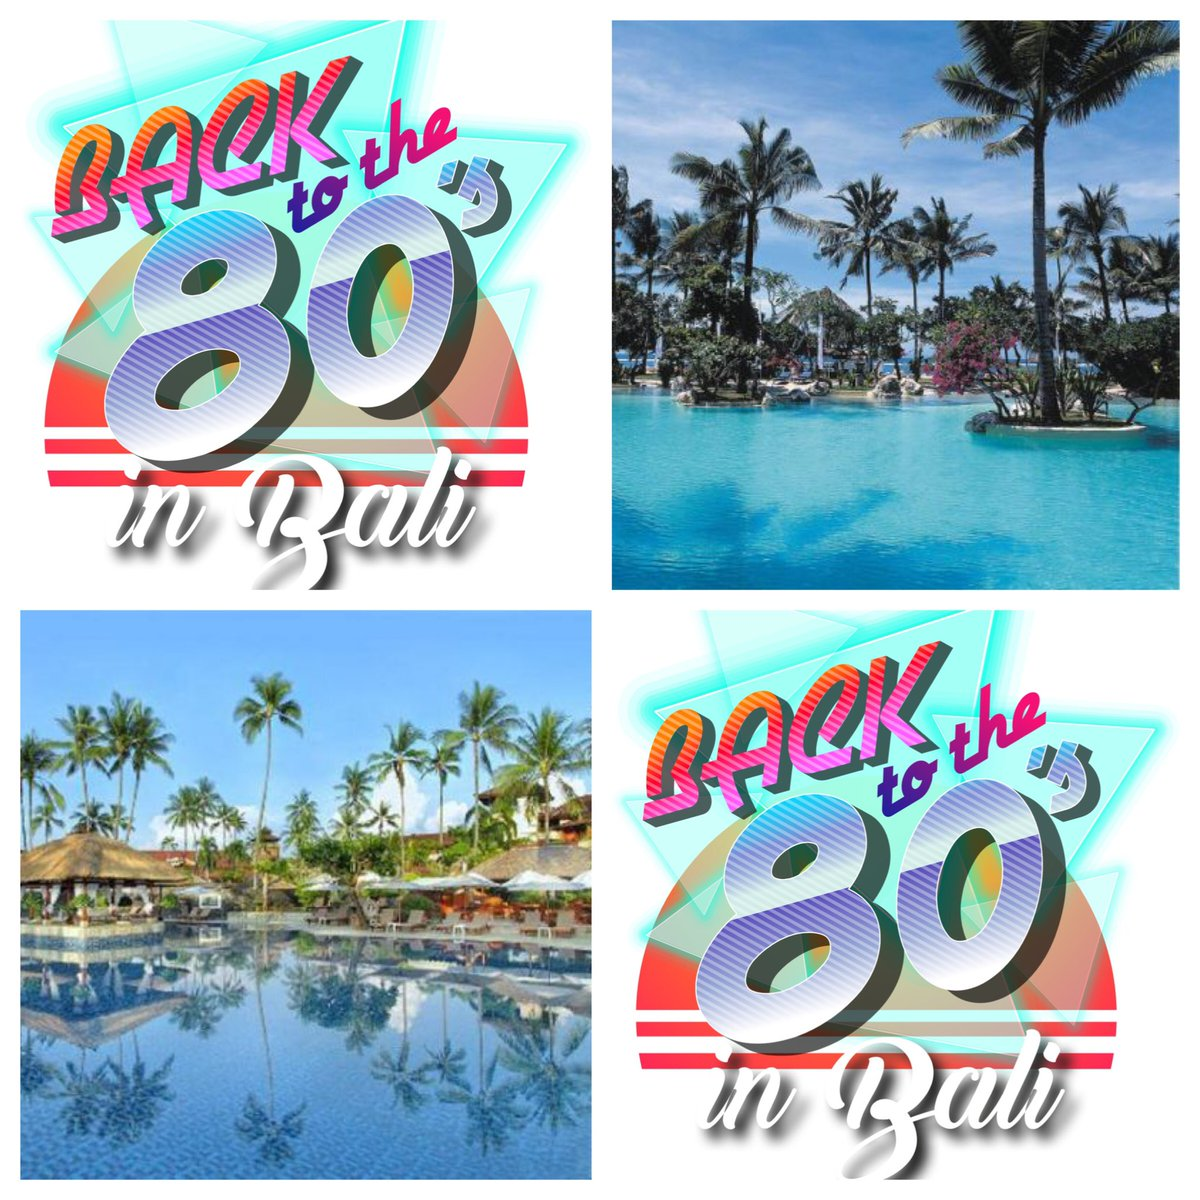 It's the week! We're on countdown to a very special Friday exclusive customer event & iconic #80s line up.Follow  for all the action from beautiful Bali. #imaginewow #backtothe80sinbali #cruise #travel #80smusic @belindaofficial @MarcAlmond @midgeure1 @toyahofficial @caroldecker